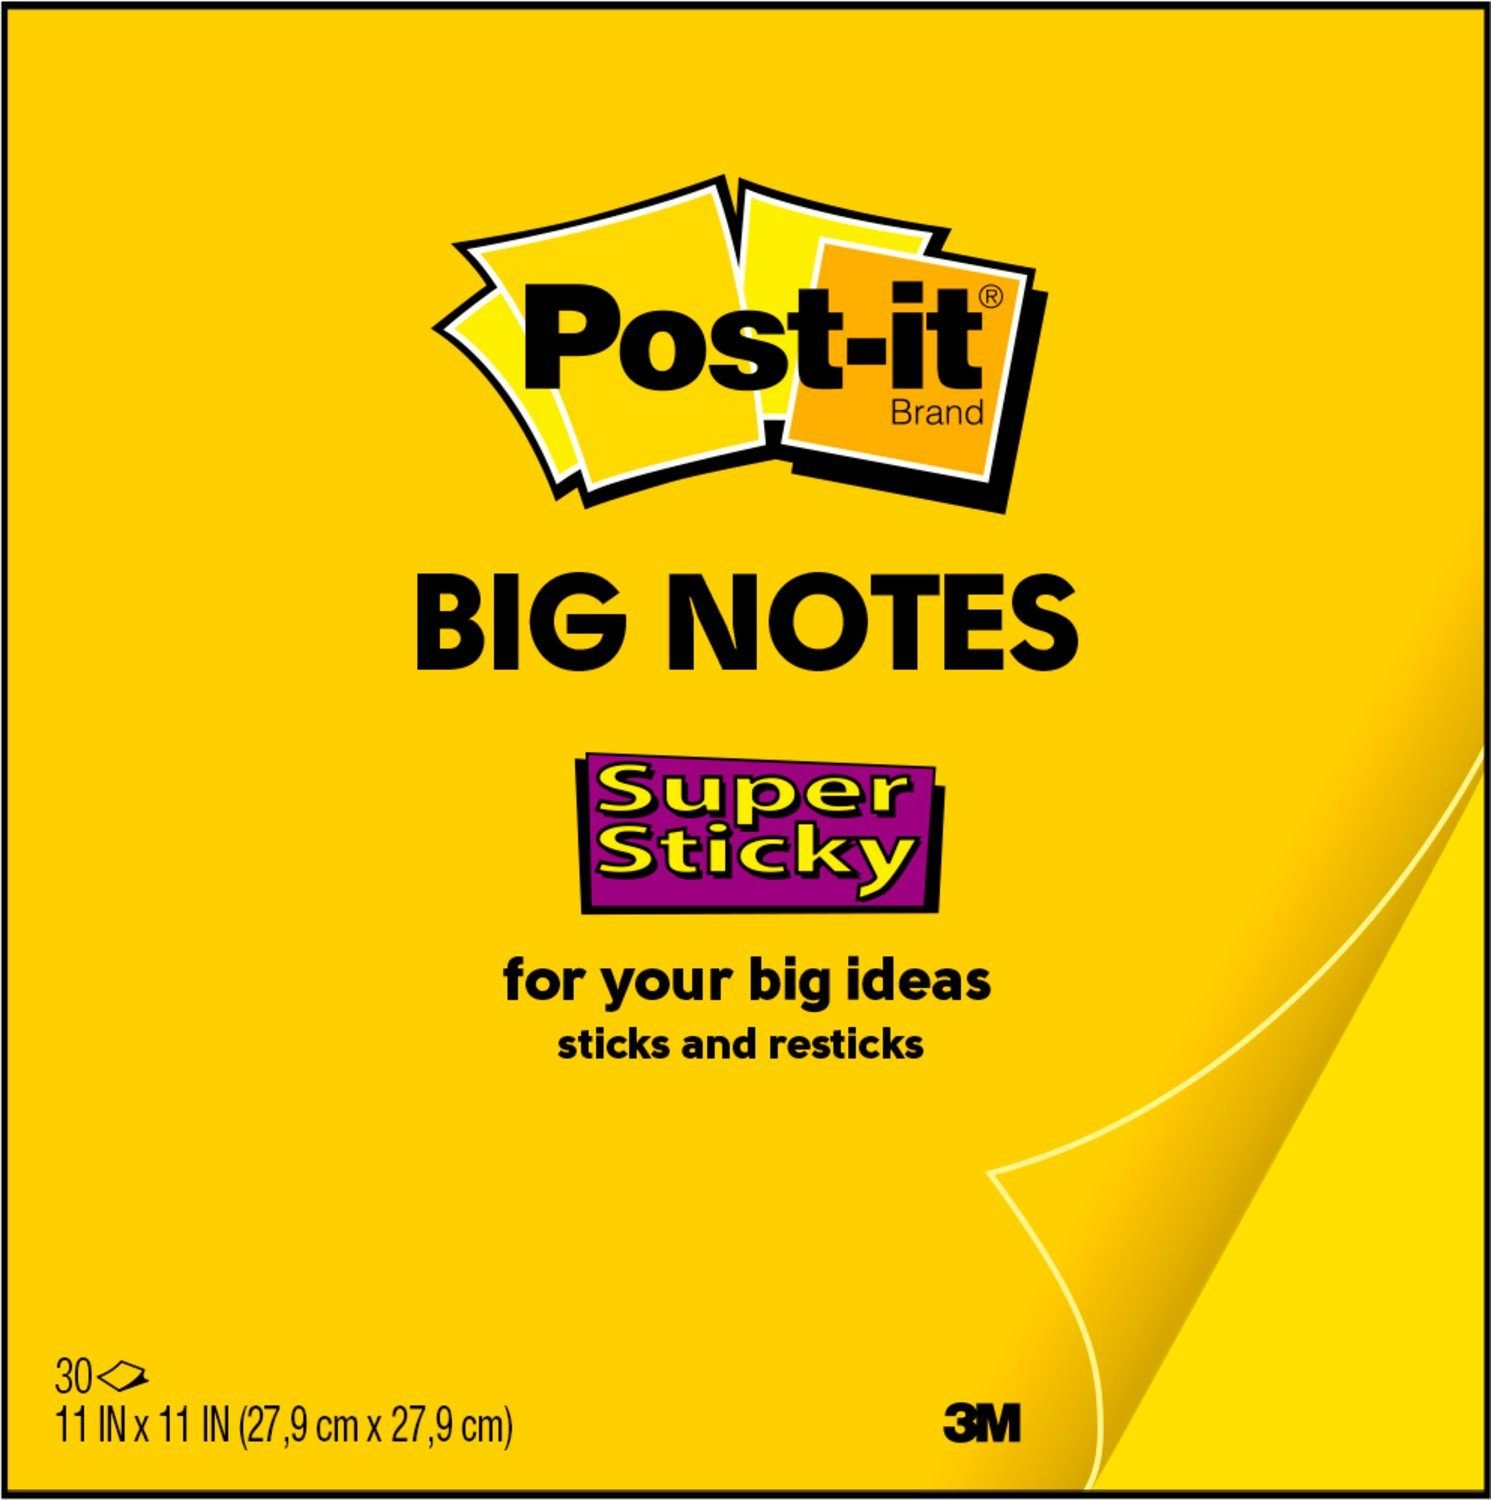 Amazon.com : Post-it Super Sticky Big Notes, 11 x 11 Inches, 30 ...